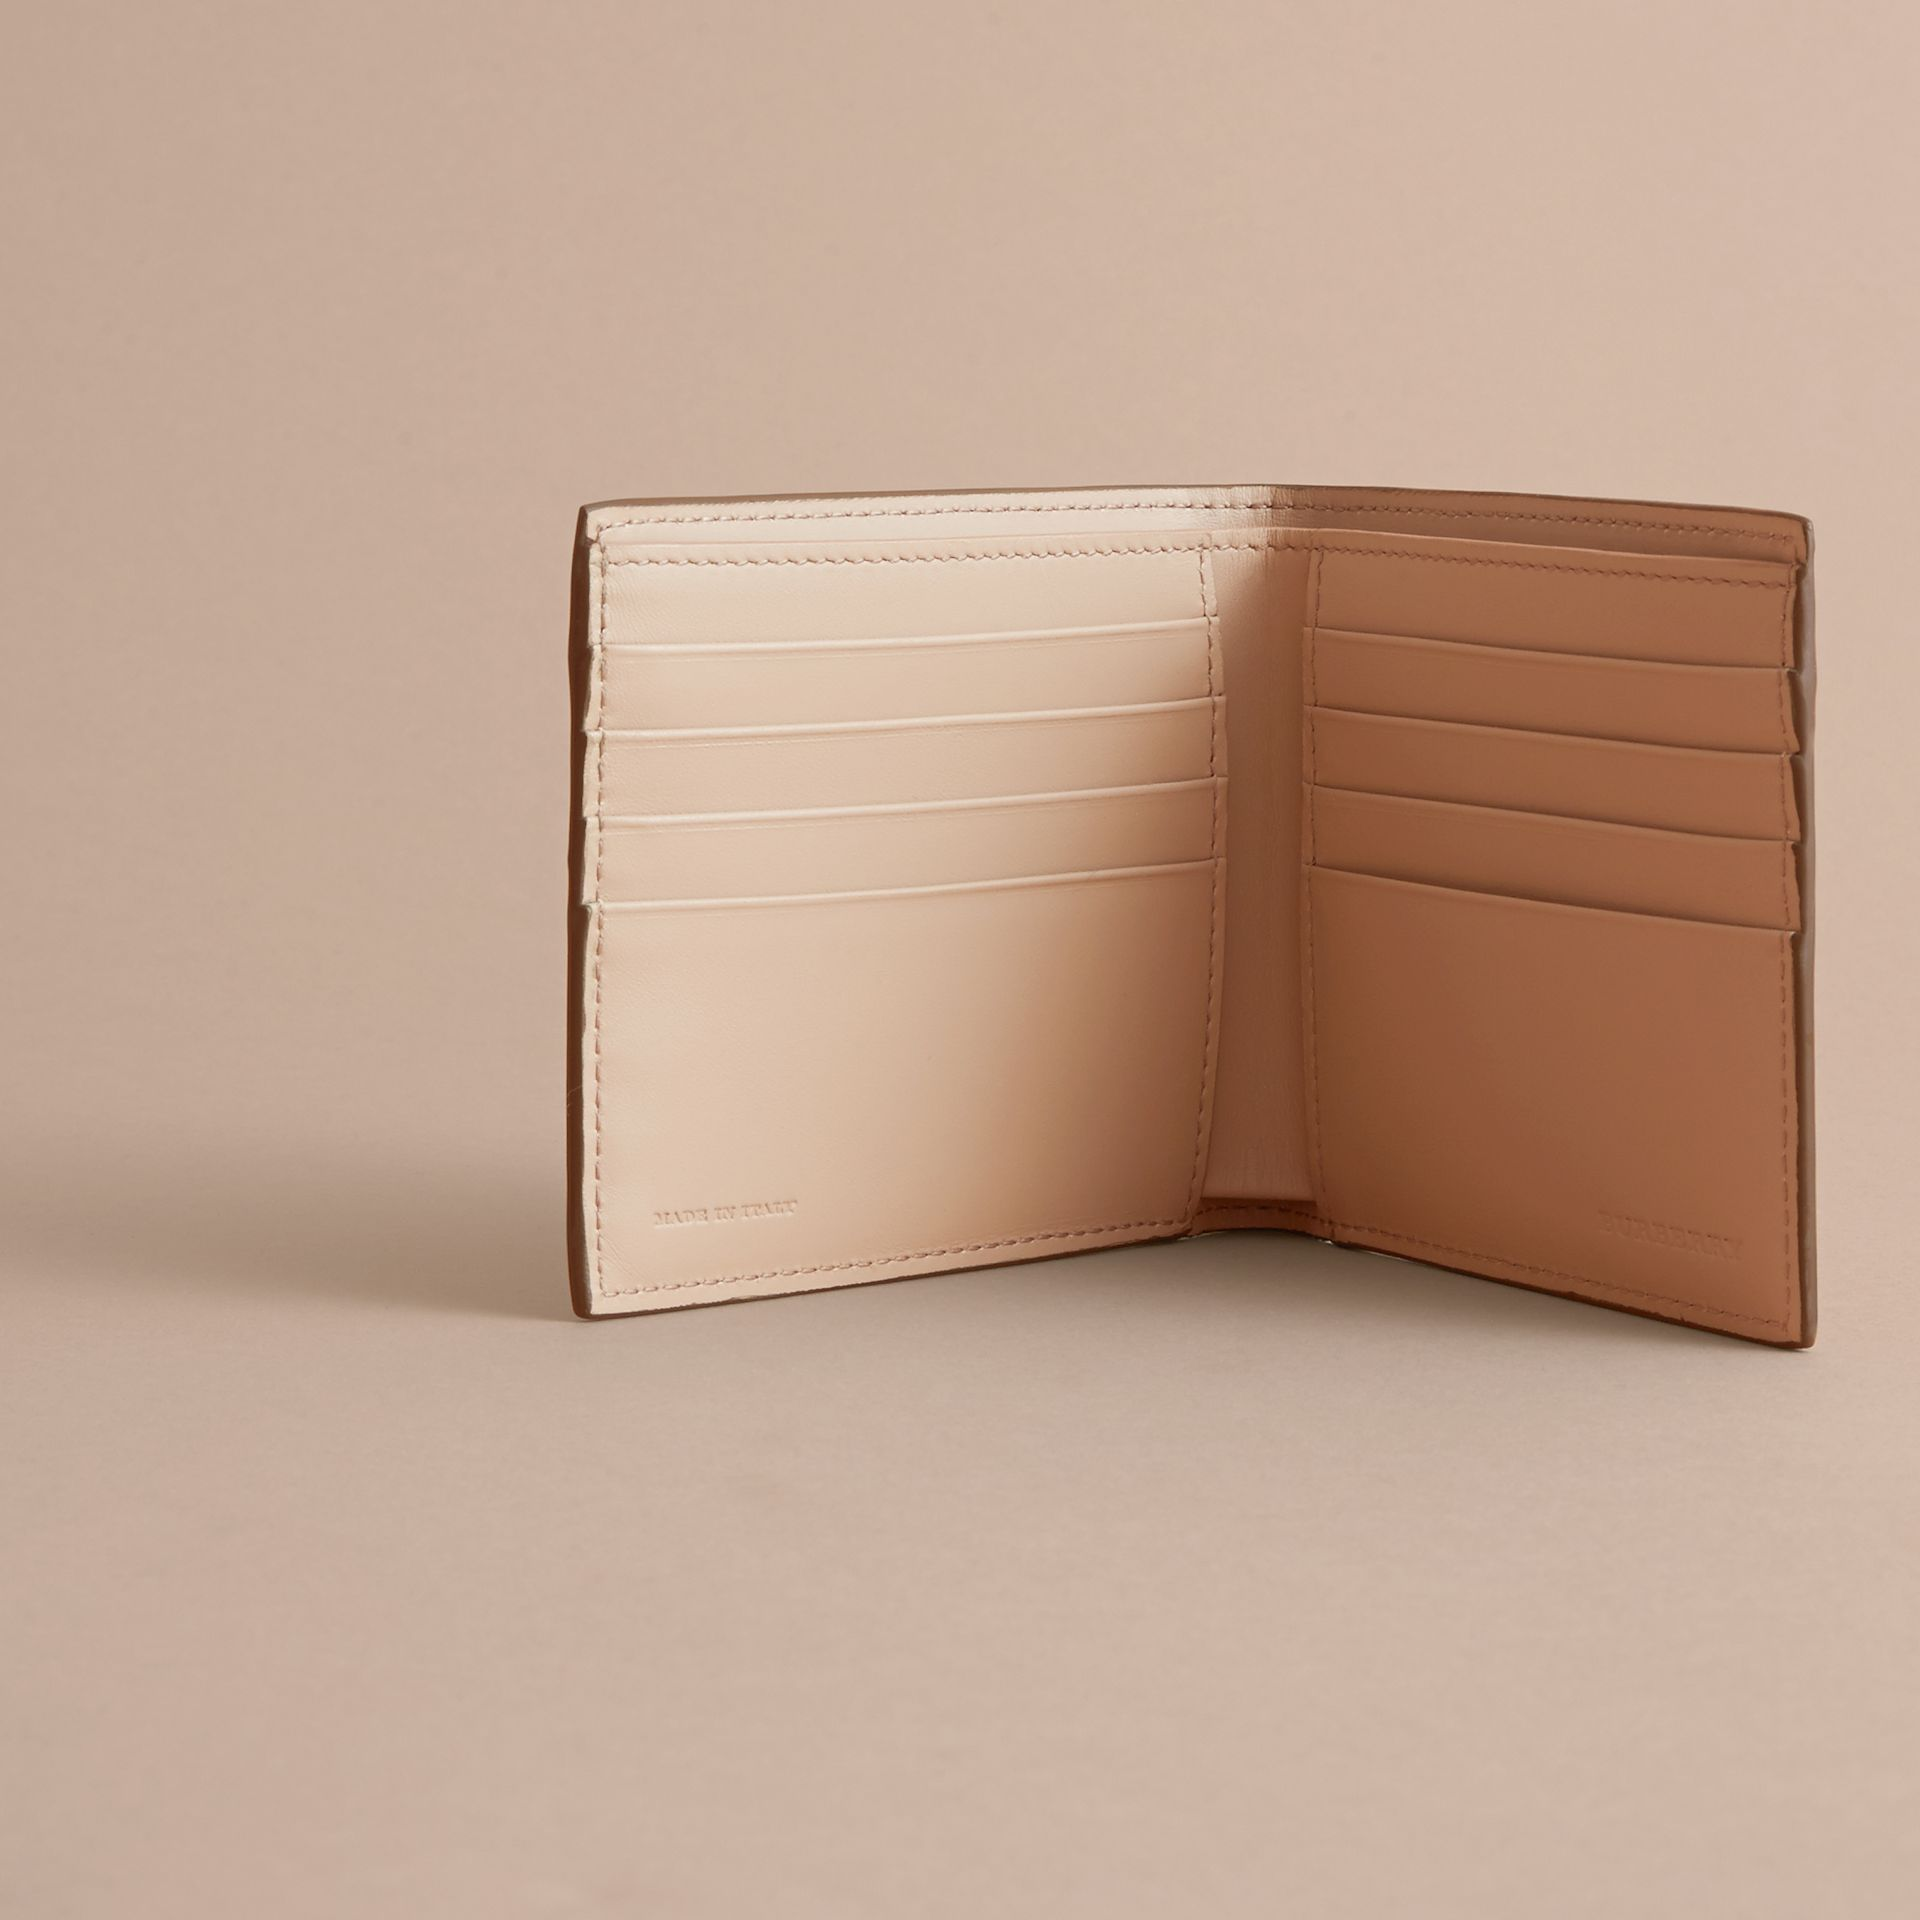 London Leather International Bifold Wallet in Tan | Burberry Australia - gallery image 6